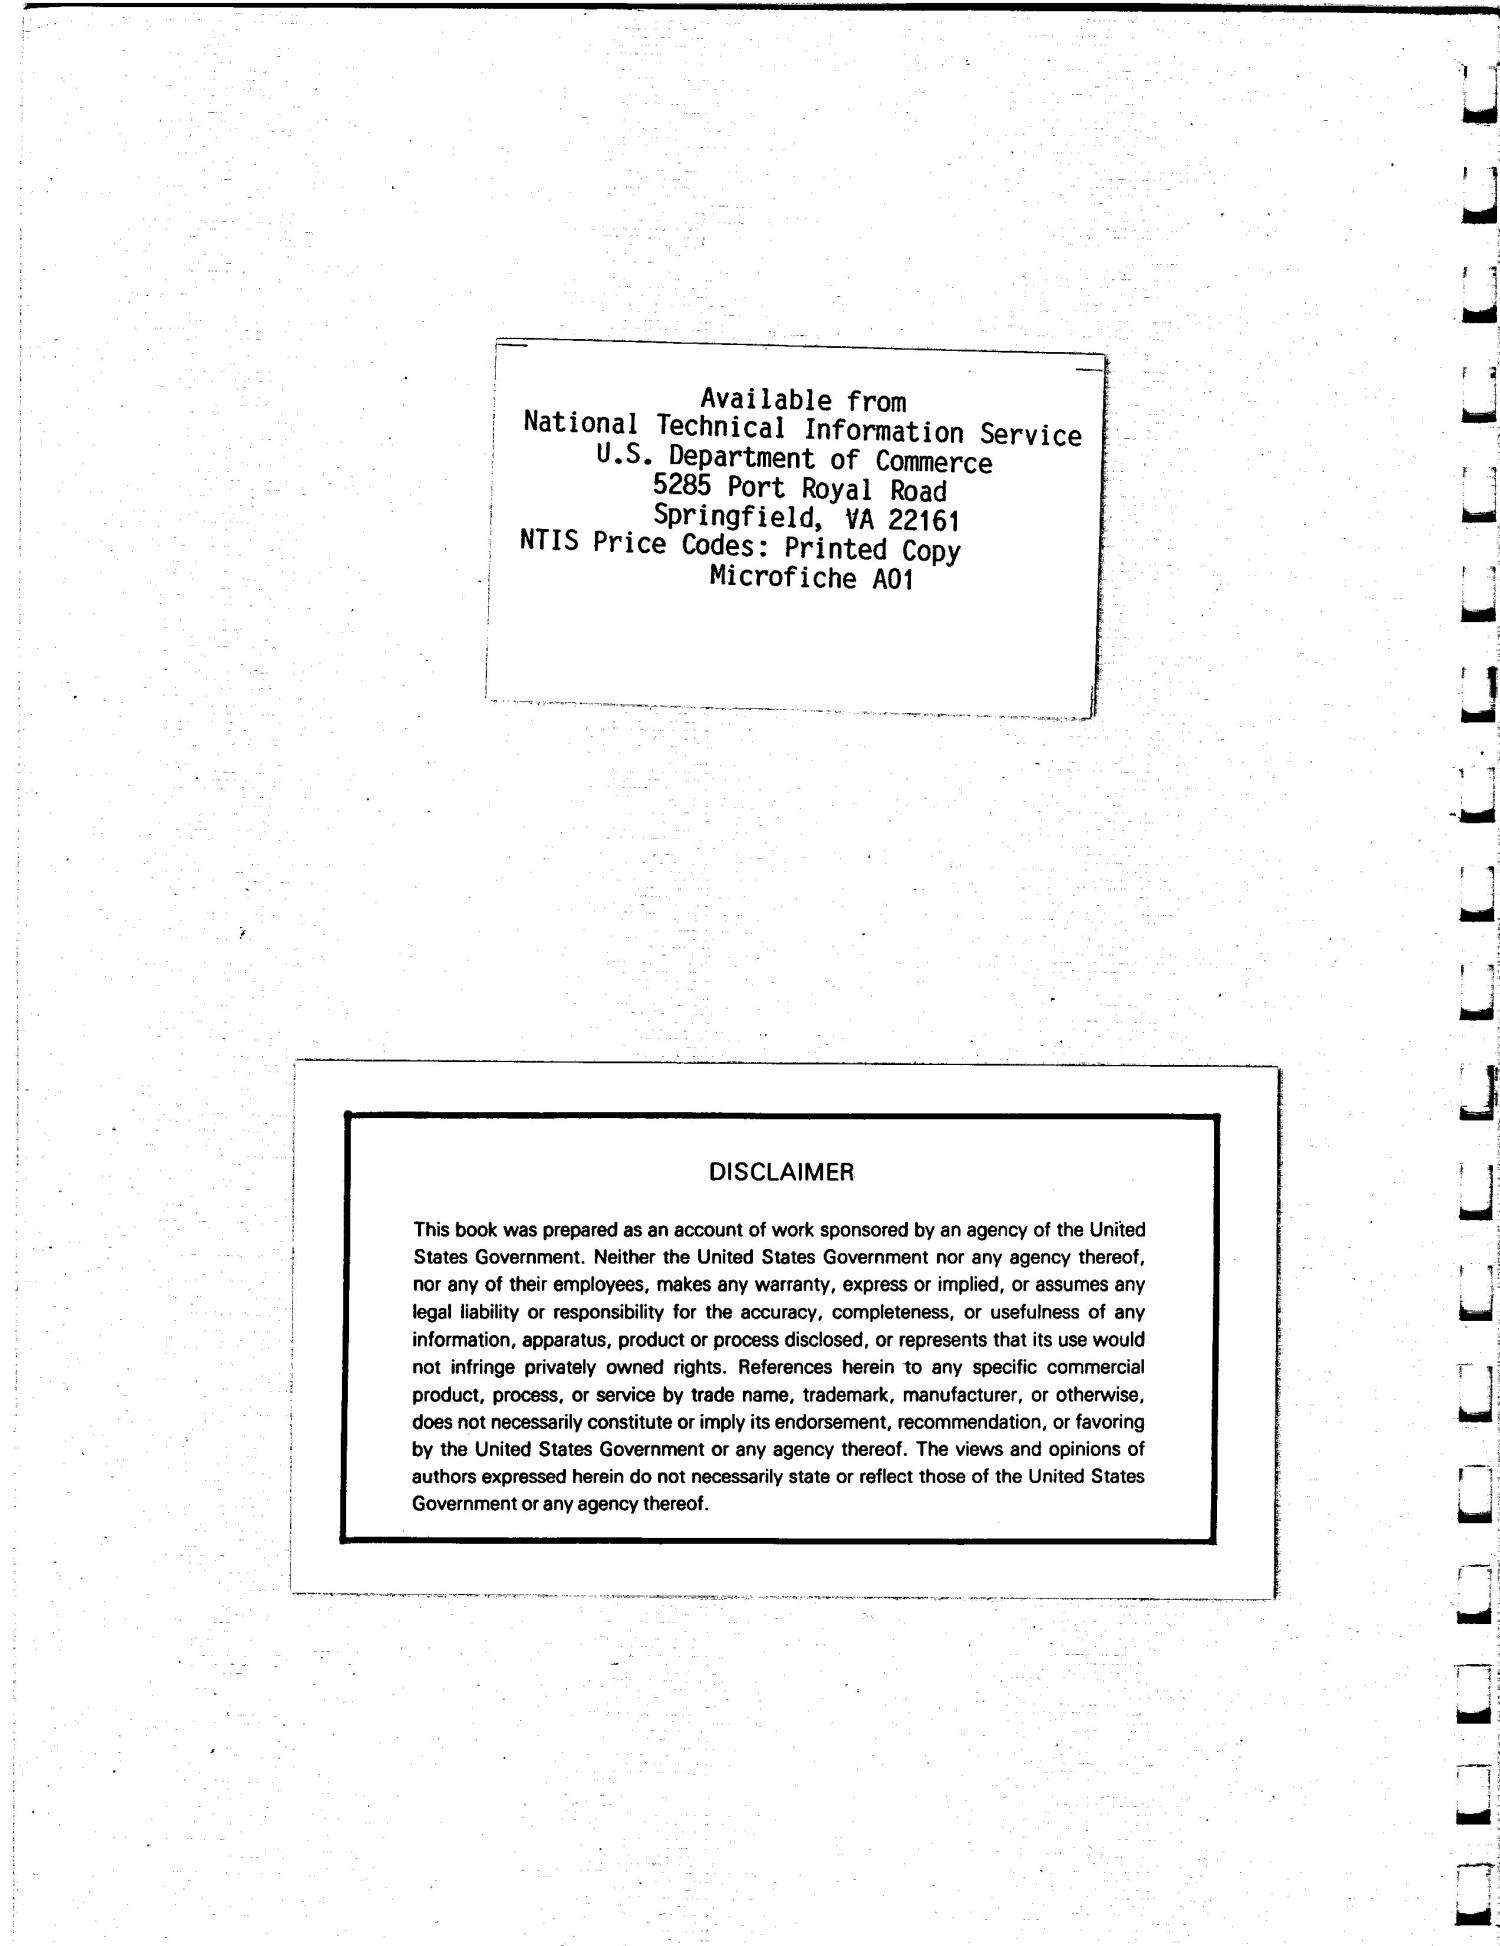 An inventory of Geothermal Resources in Nebraska: State-Coupled Program between US Department of Energy and The University of Nebraska. Final report, June 30, 1983                                                                                                      [Sequence #]: 2 of 296